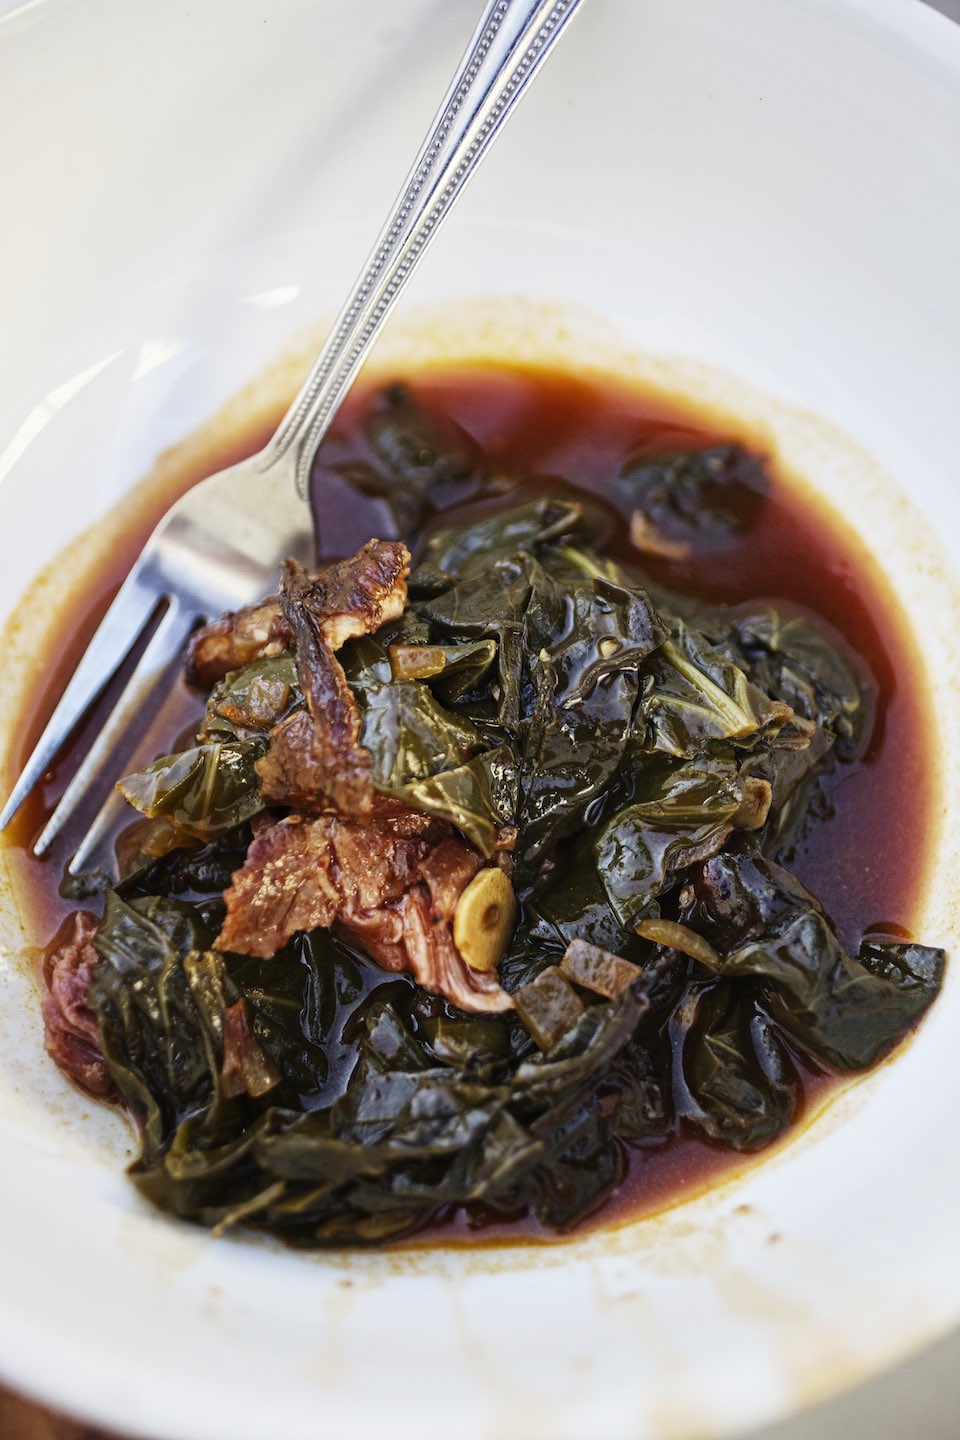 Jody Horton Photography - Stewed collards and meat in a shallow bowl.